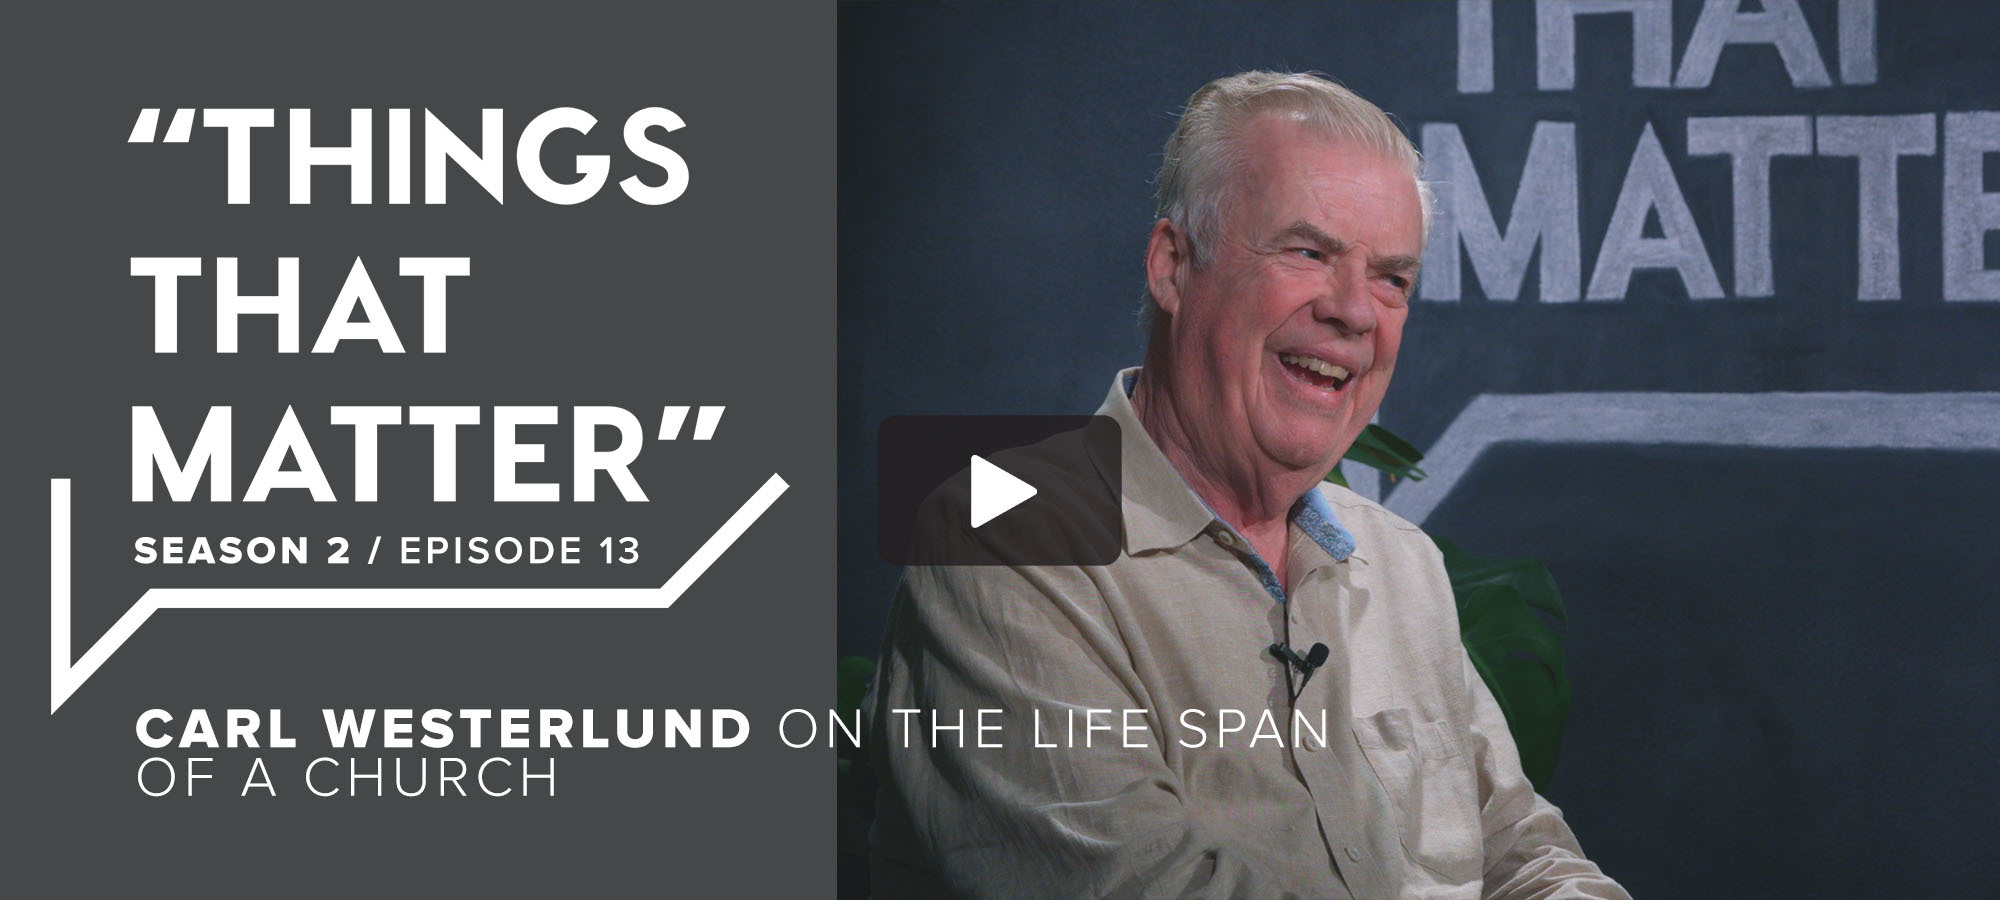 TTM S2 E13 - Carl Westerlund on the Life Span of a Church